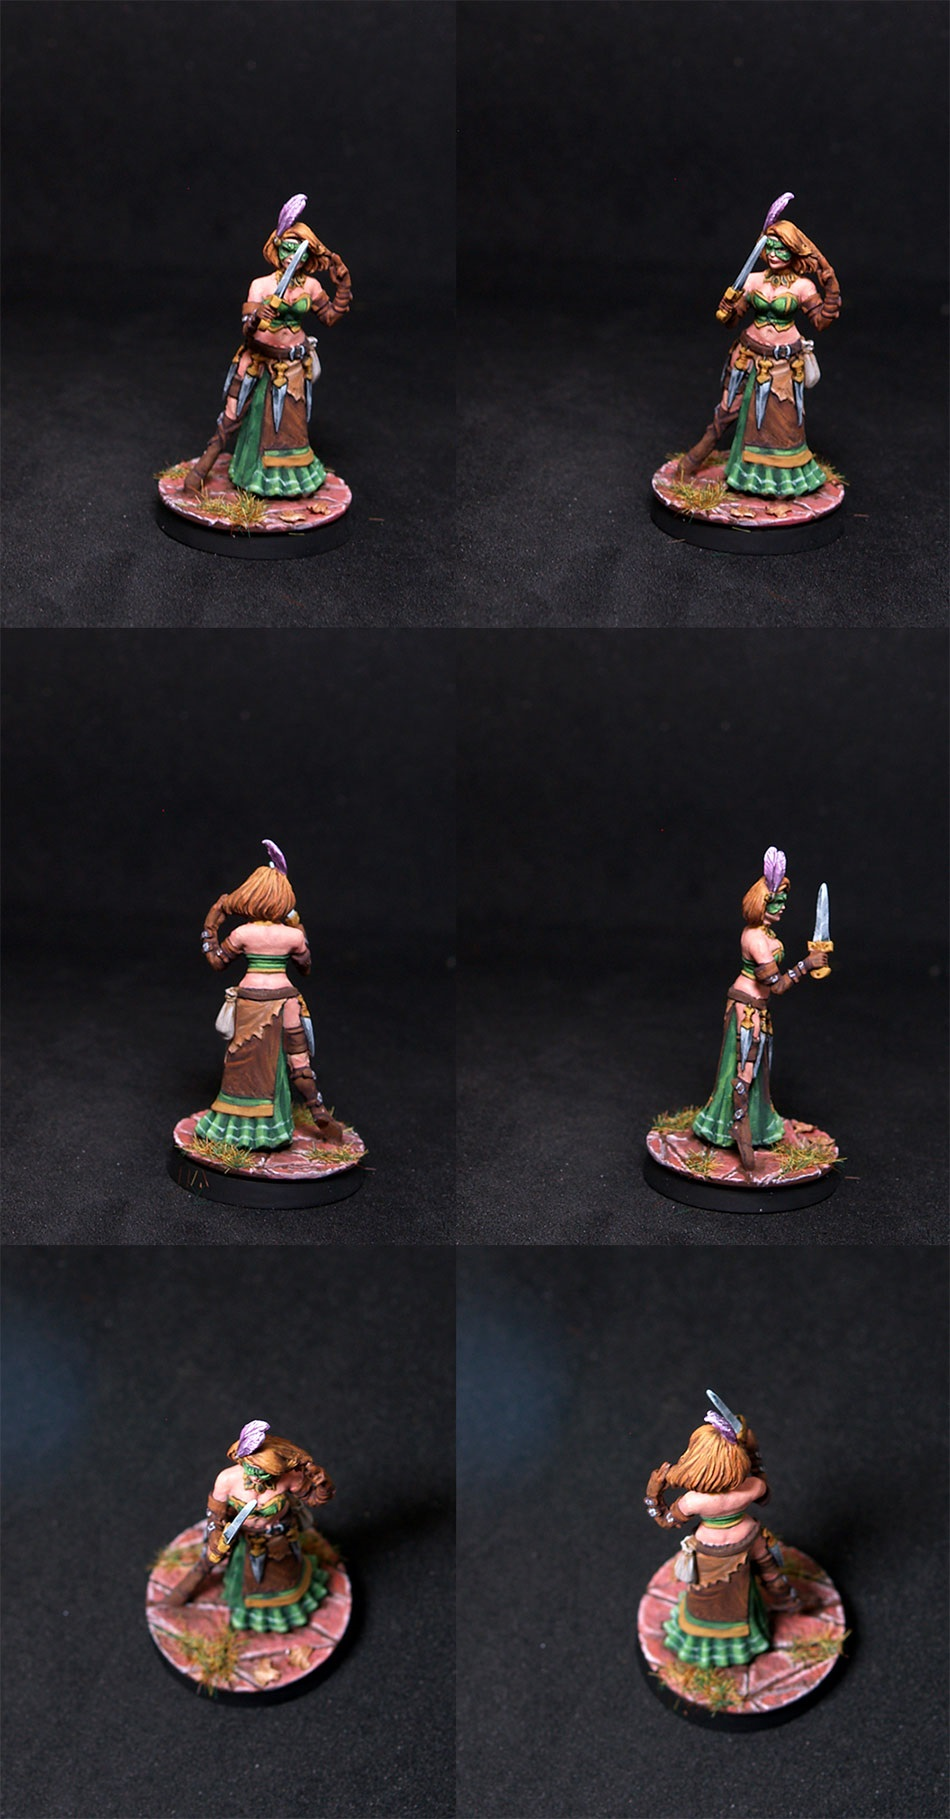 Bombshell Miniatures Elizabeth Beckford - Assassin